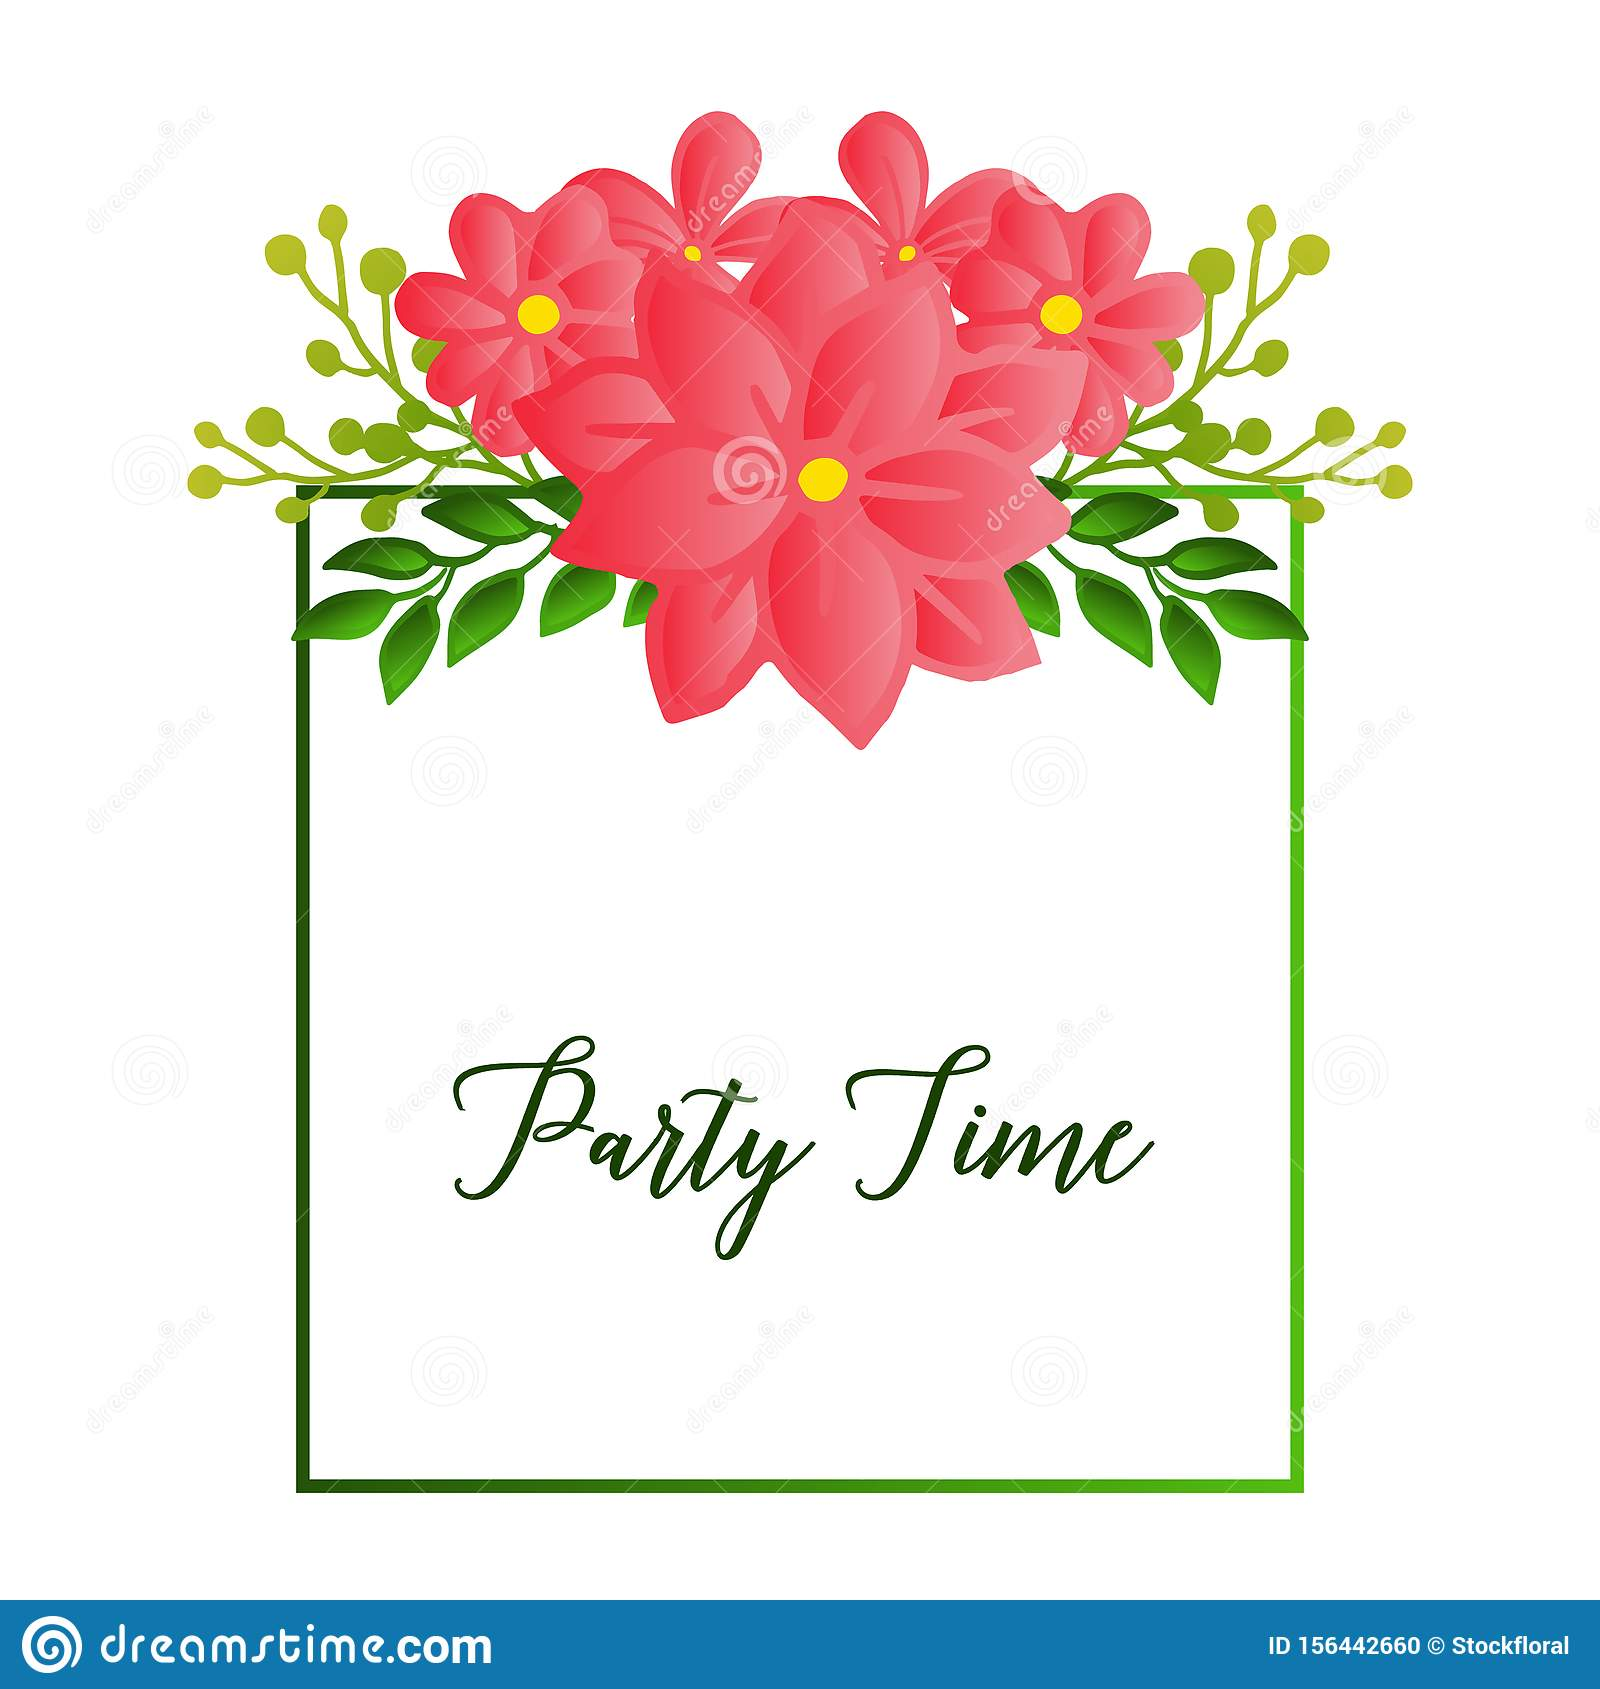 Party time text card, with simple retro design of leaf flower frame. Vector